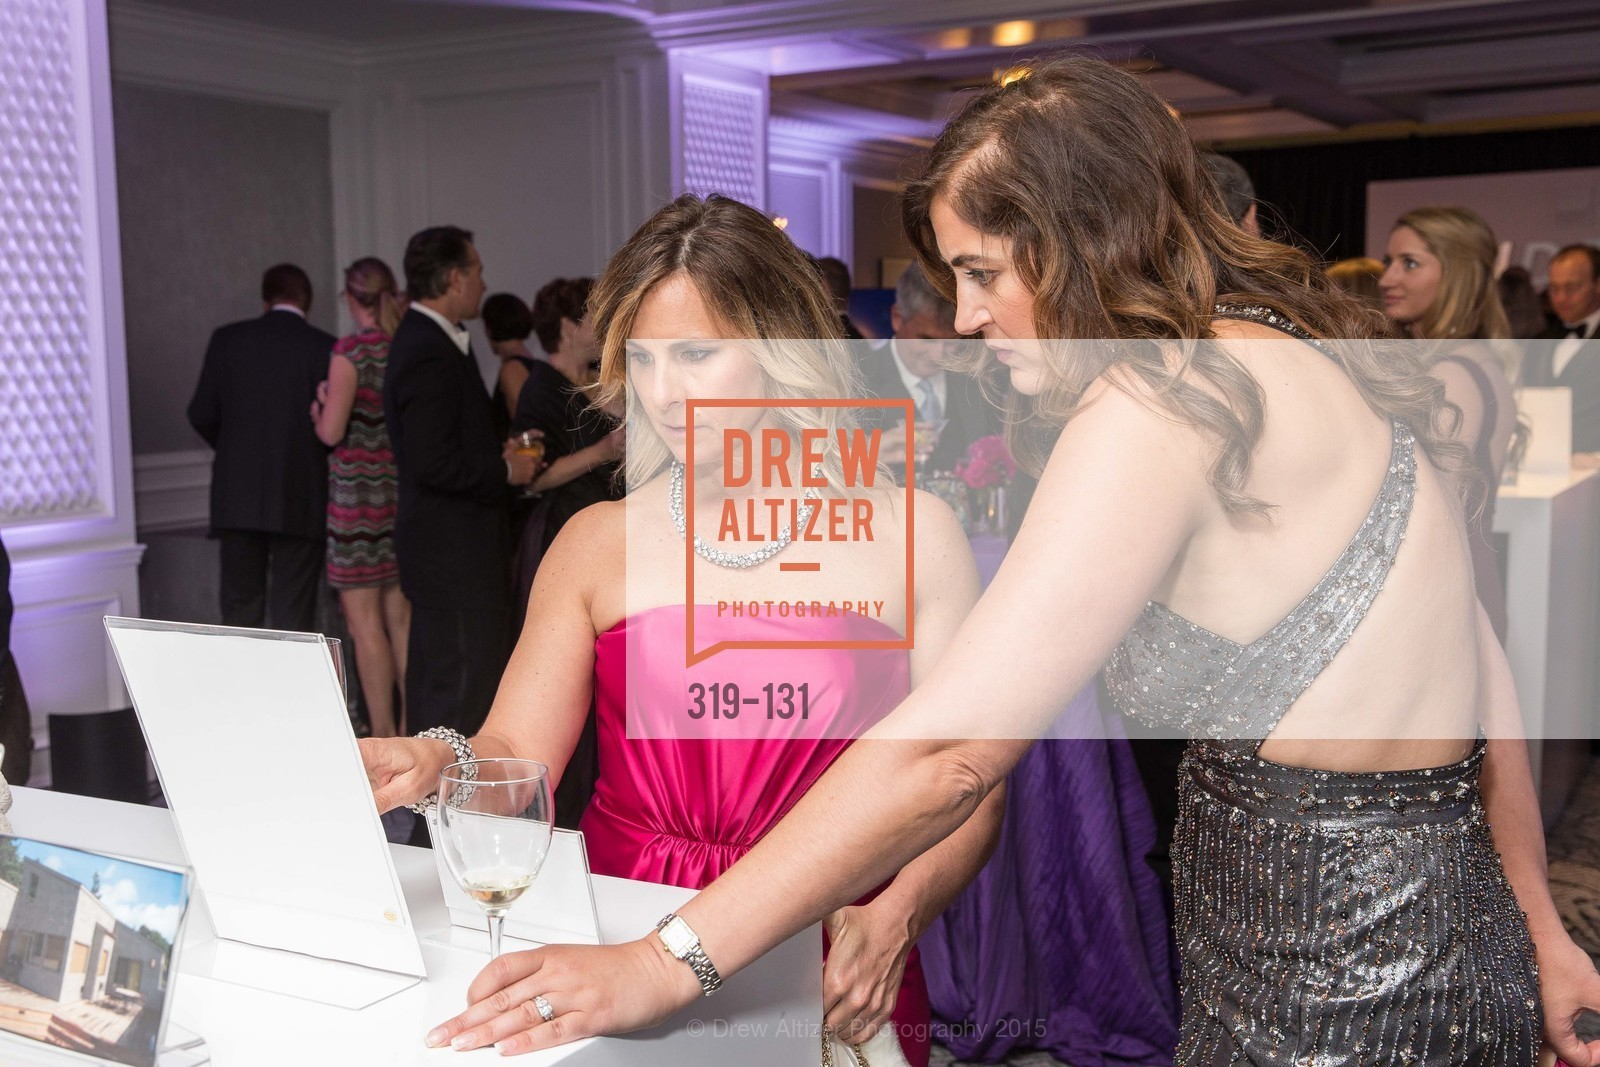 Carol Kopko, Christine Tozzi, JUVENILE DIABETES RESEARCH FOUNDATION  Hope Gala, The Ritz-Carlton, May 29th, 2015,Drew Altizer, Drew Altizer Photography, full-service event agency, private events, San Francisco photographer, photographer California